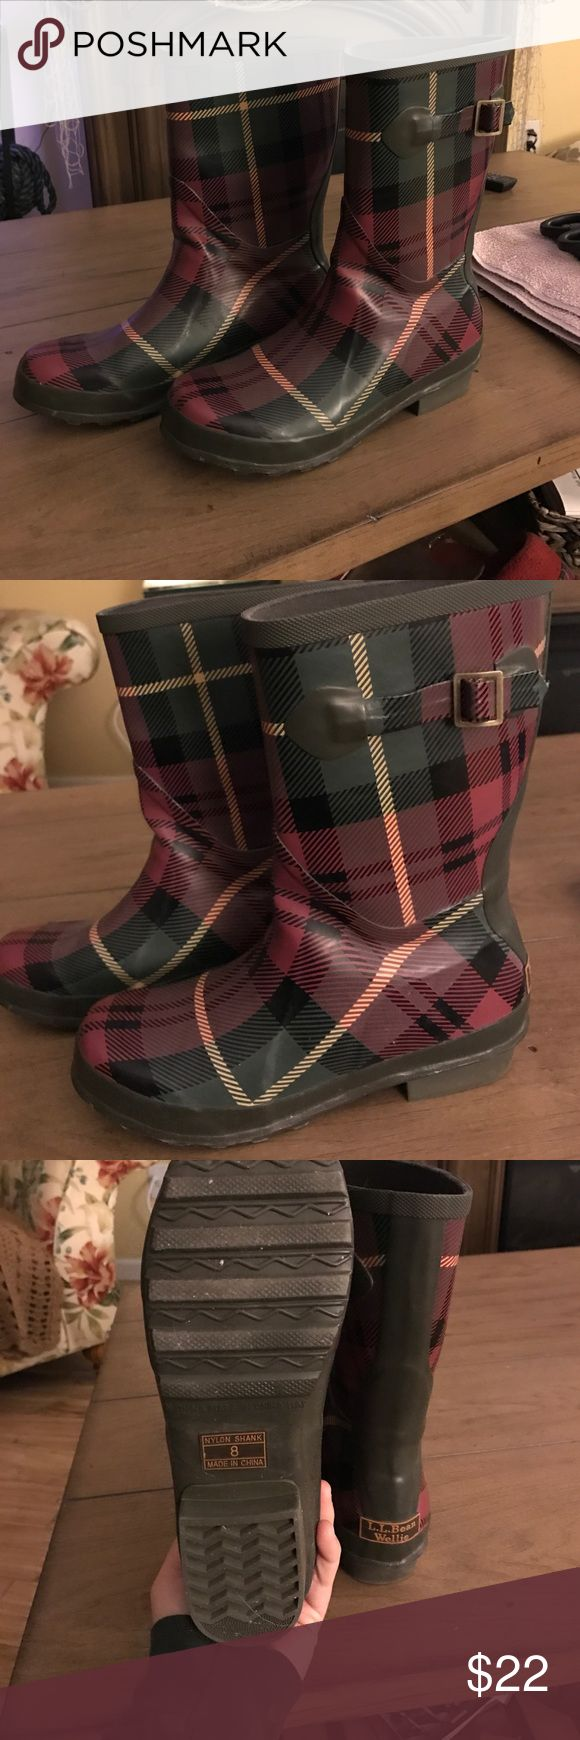 "L.L. Bean rain boots Wellie L.L. Bean rain boots. I believe this is the signature plaid. They are a ""women's 8 medium"". Very comfortable and stylish. Hardly worn, basically brand new. I posted one picture with the flash so you can see the colors. L.L. Bean Shoes Winter & Rain Boots"